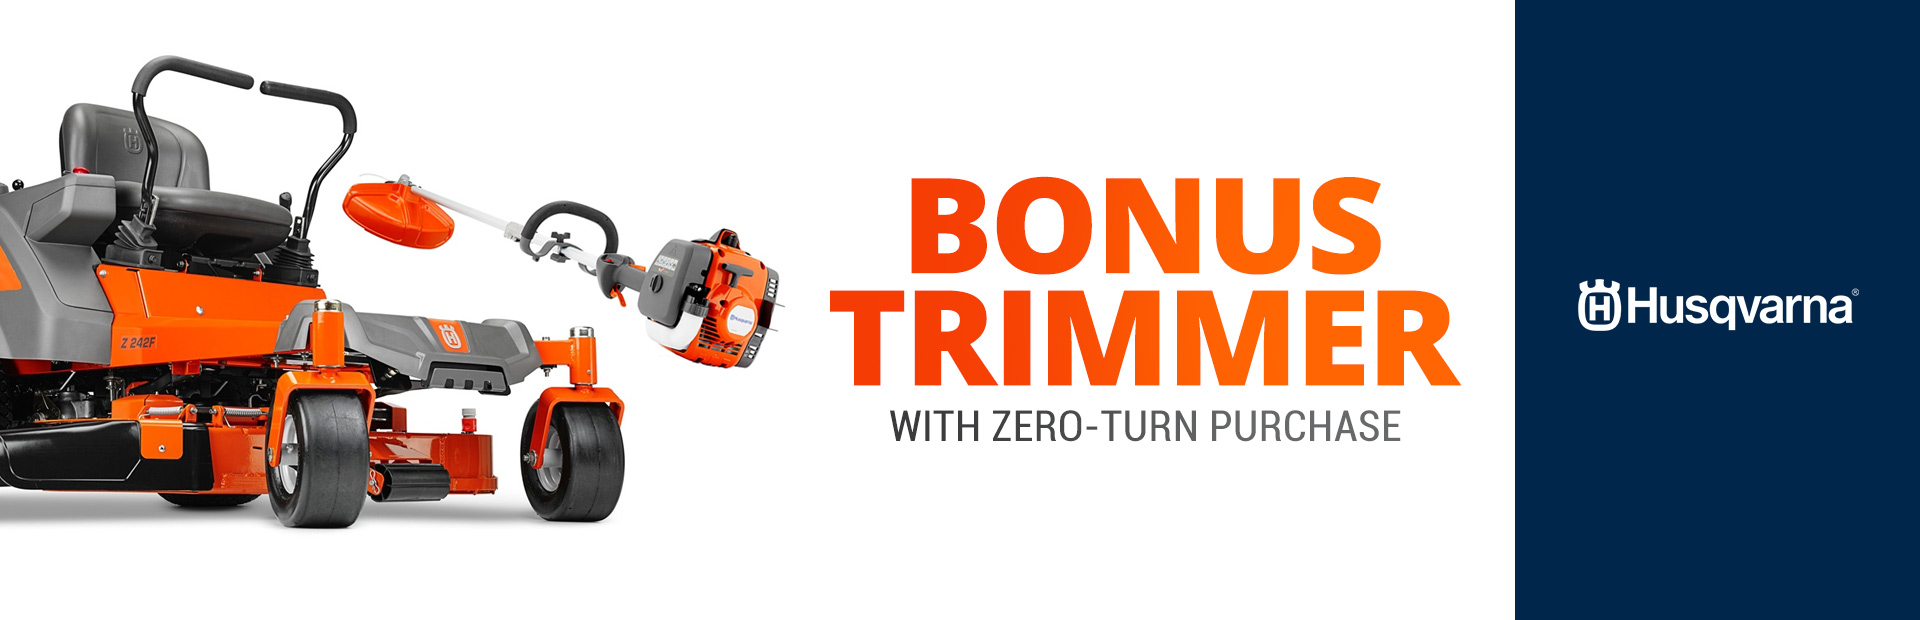 Bonus Trimmer With Zero-Turn Purchase